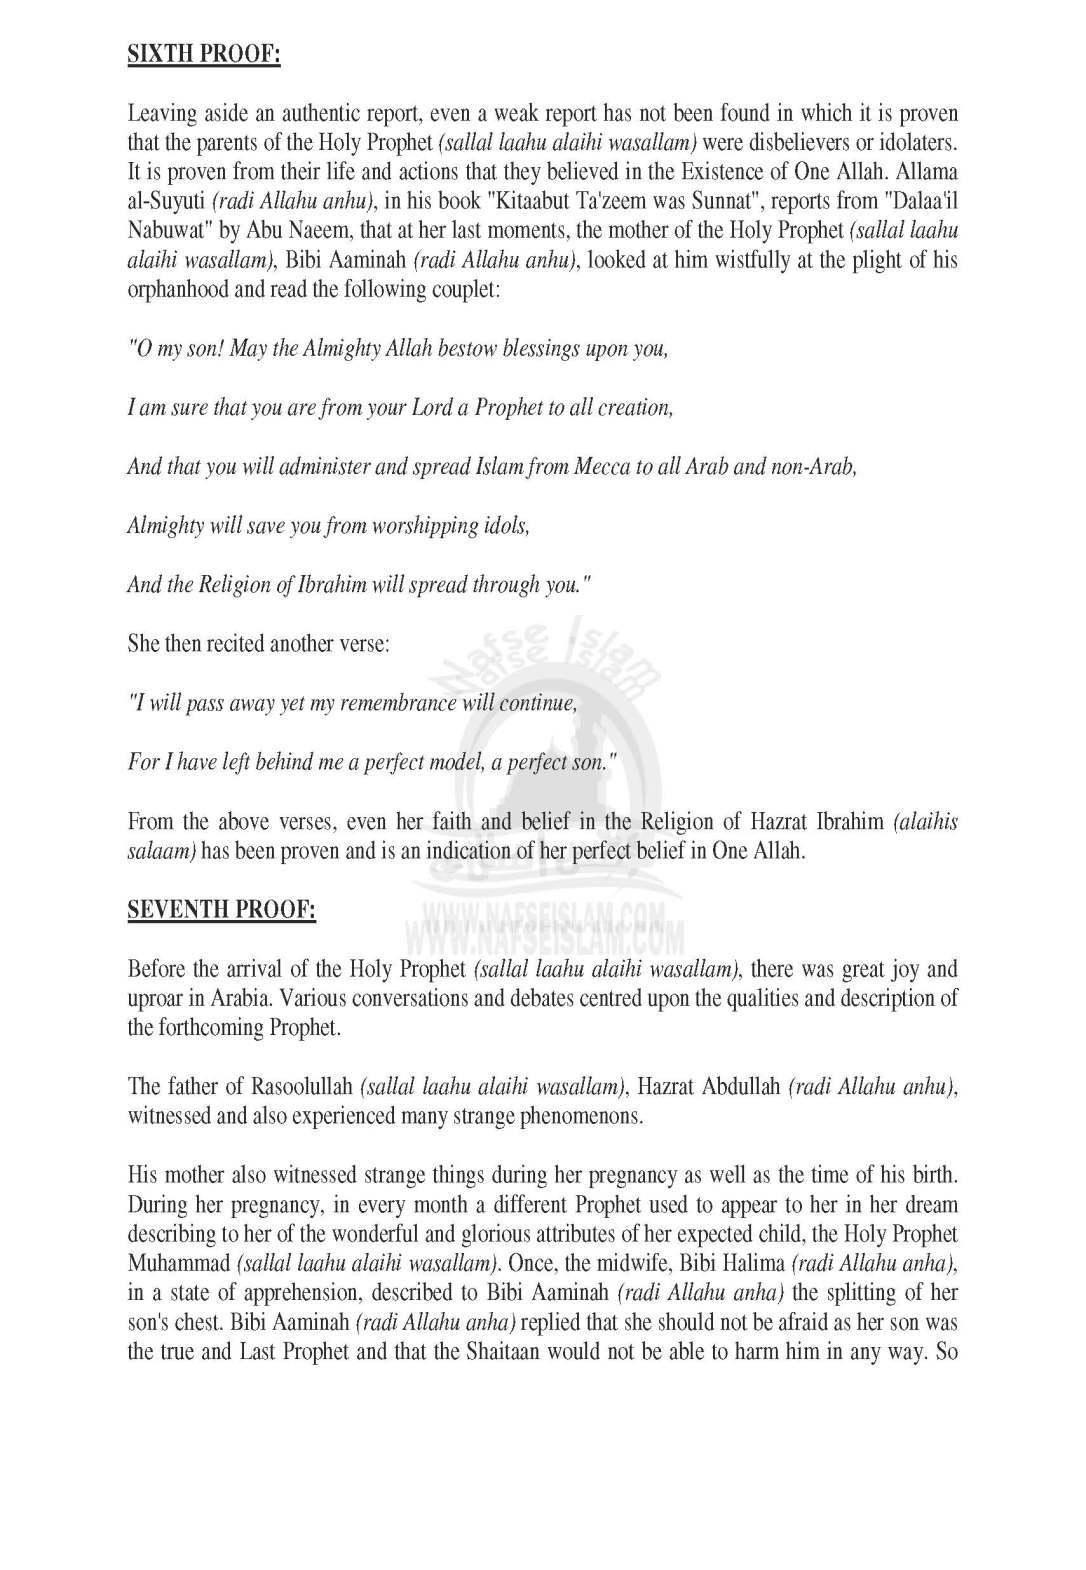 ParentsofHolyProphet_Page_05